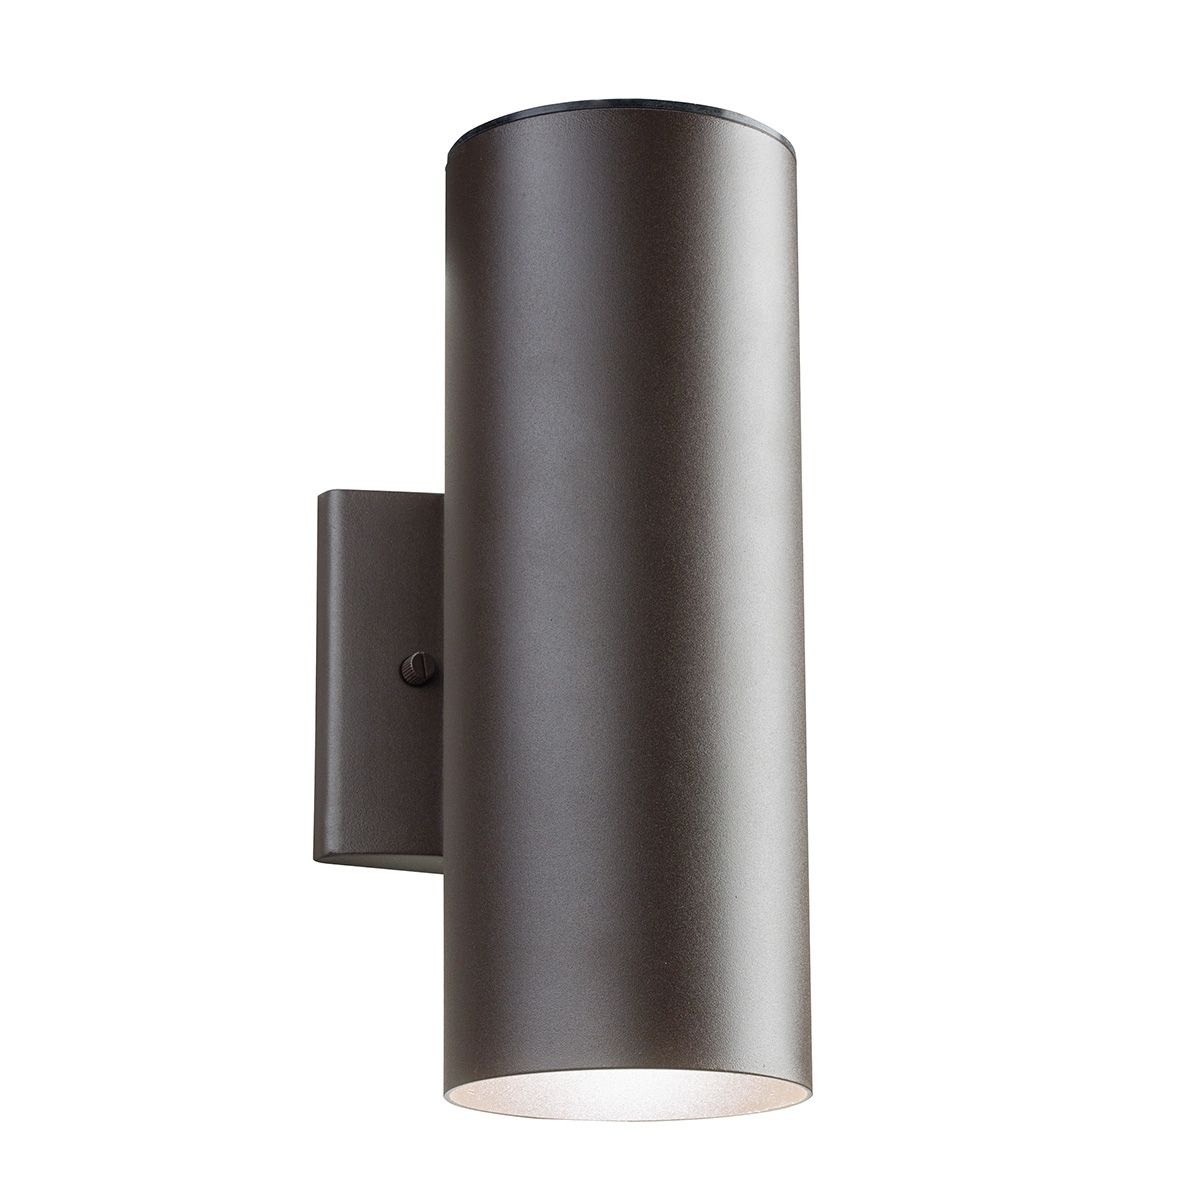 Outdoor led down light fixtures httpscartclub pinterest outdoor led down light fixtures arubaitofo Images